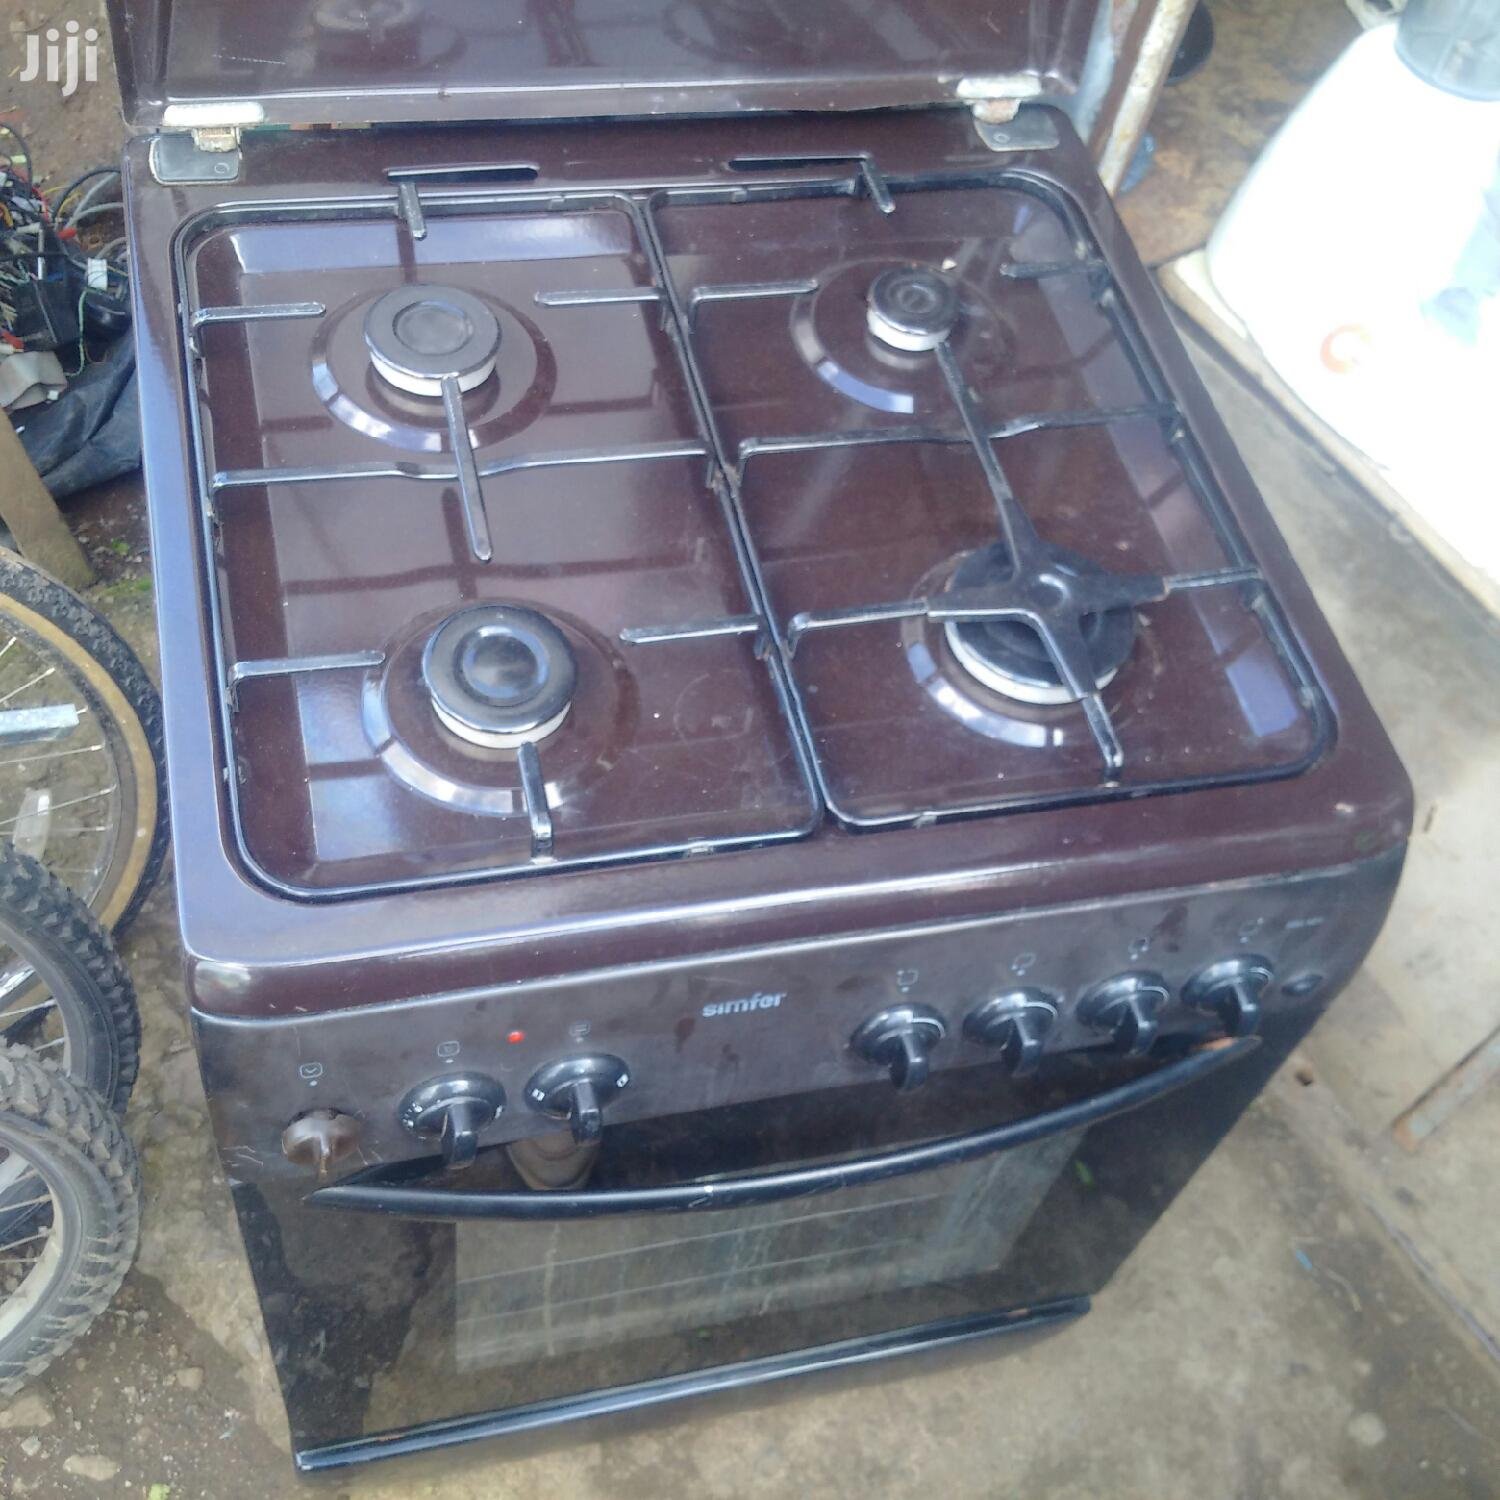 Simfer 4 Gas Cooker ,1 Electric Oven   Kitchen Appliances for sale in Nairobi Central, Nairobi, Kenya